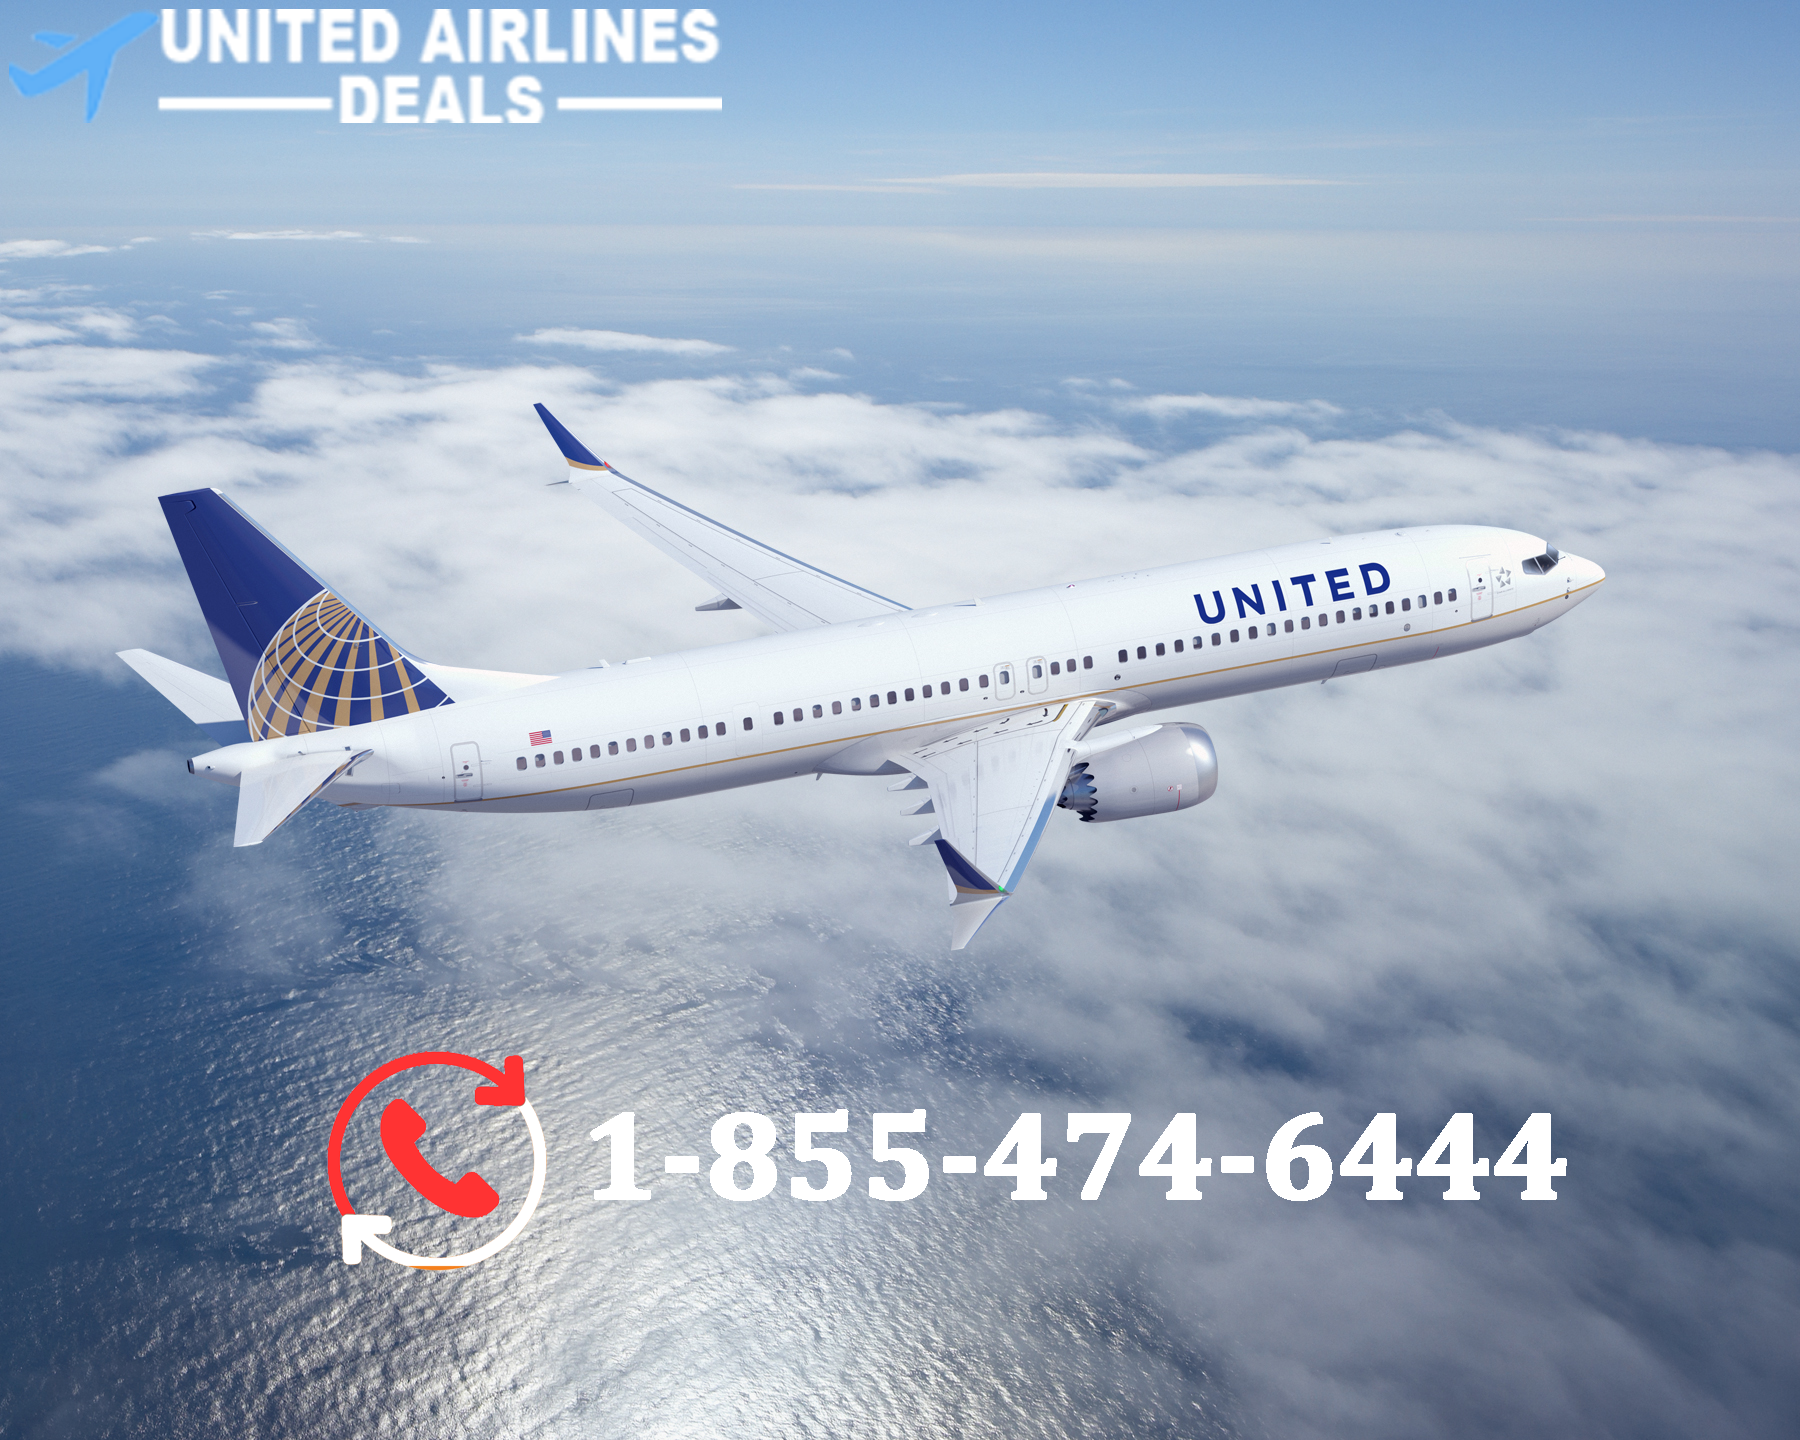 Pin By Ronny John On Unitedairlines Reservations United Airlines Delta Airlines Aviation News